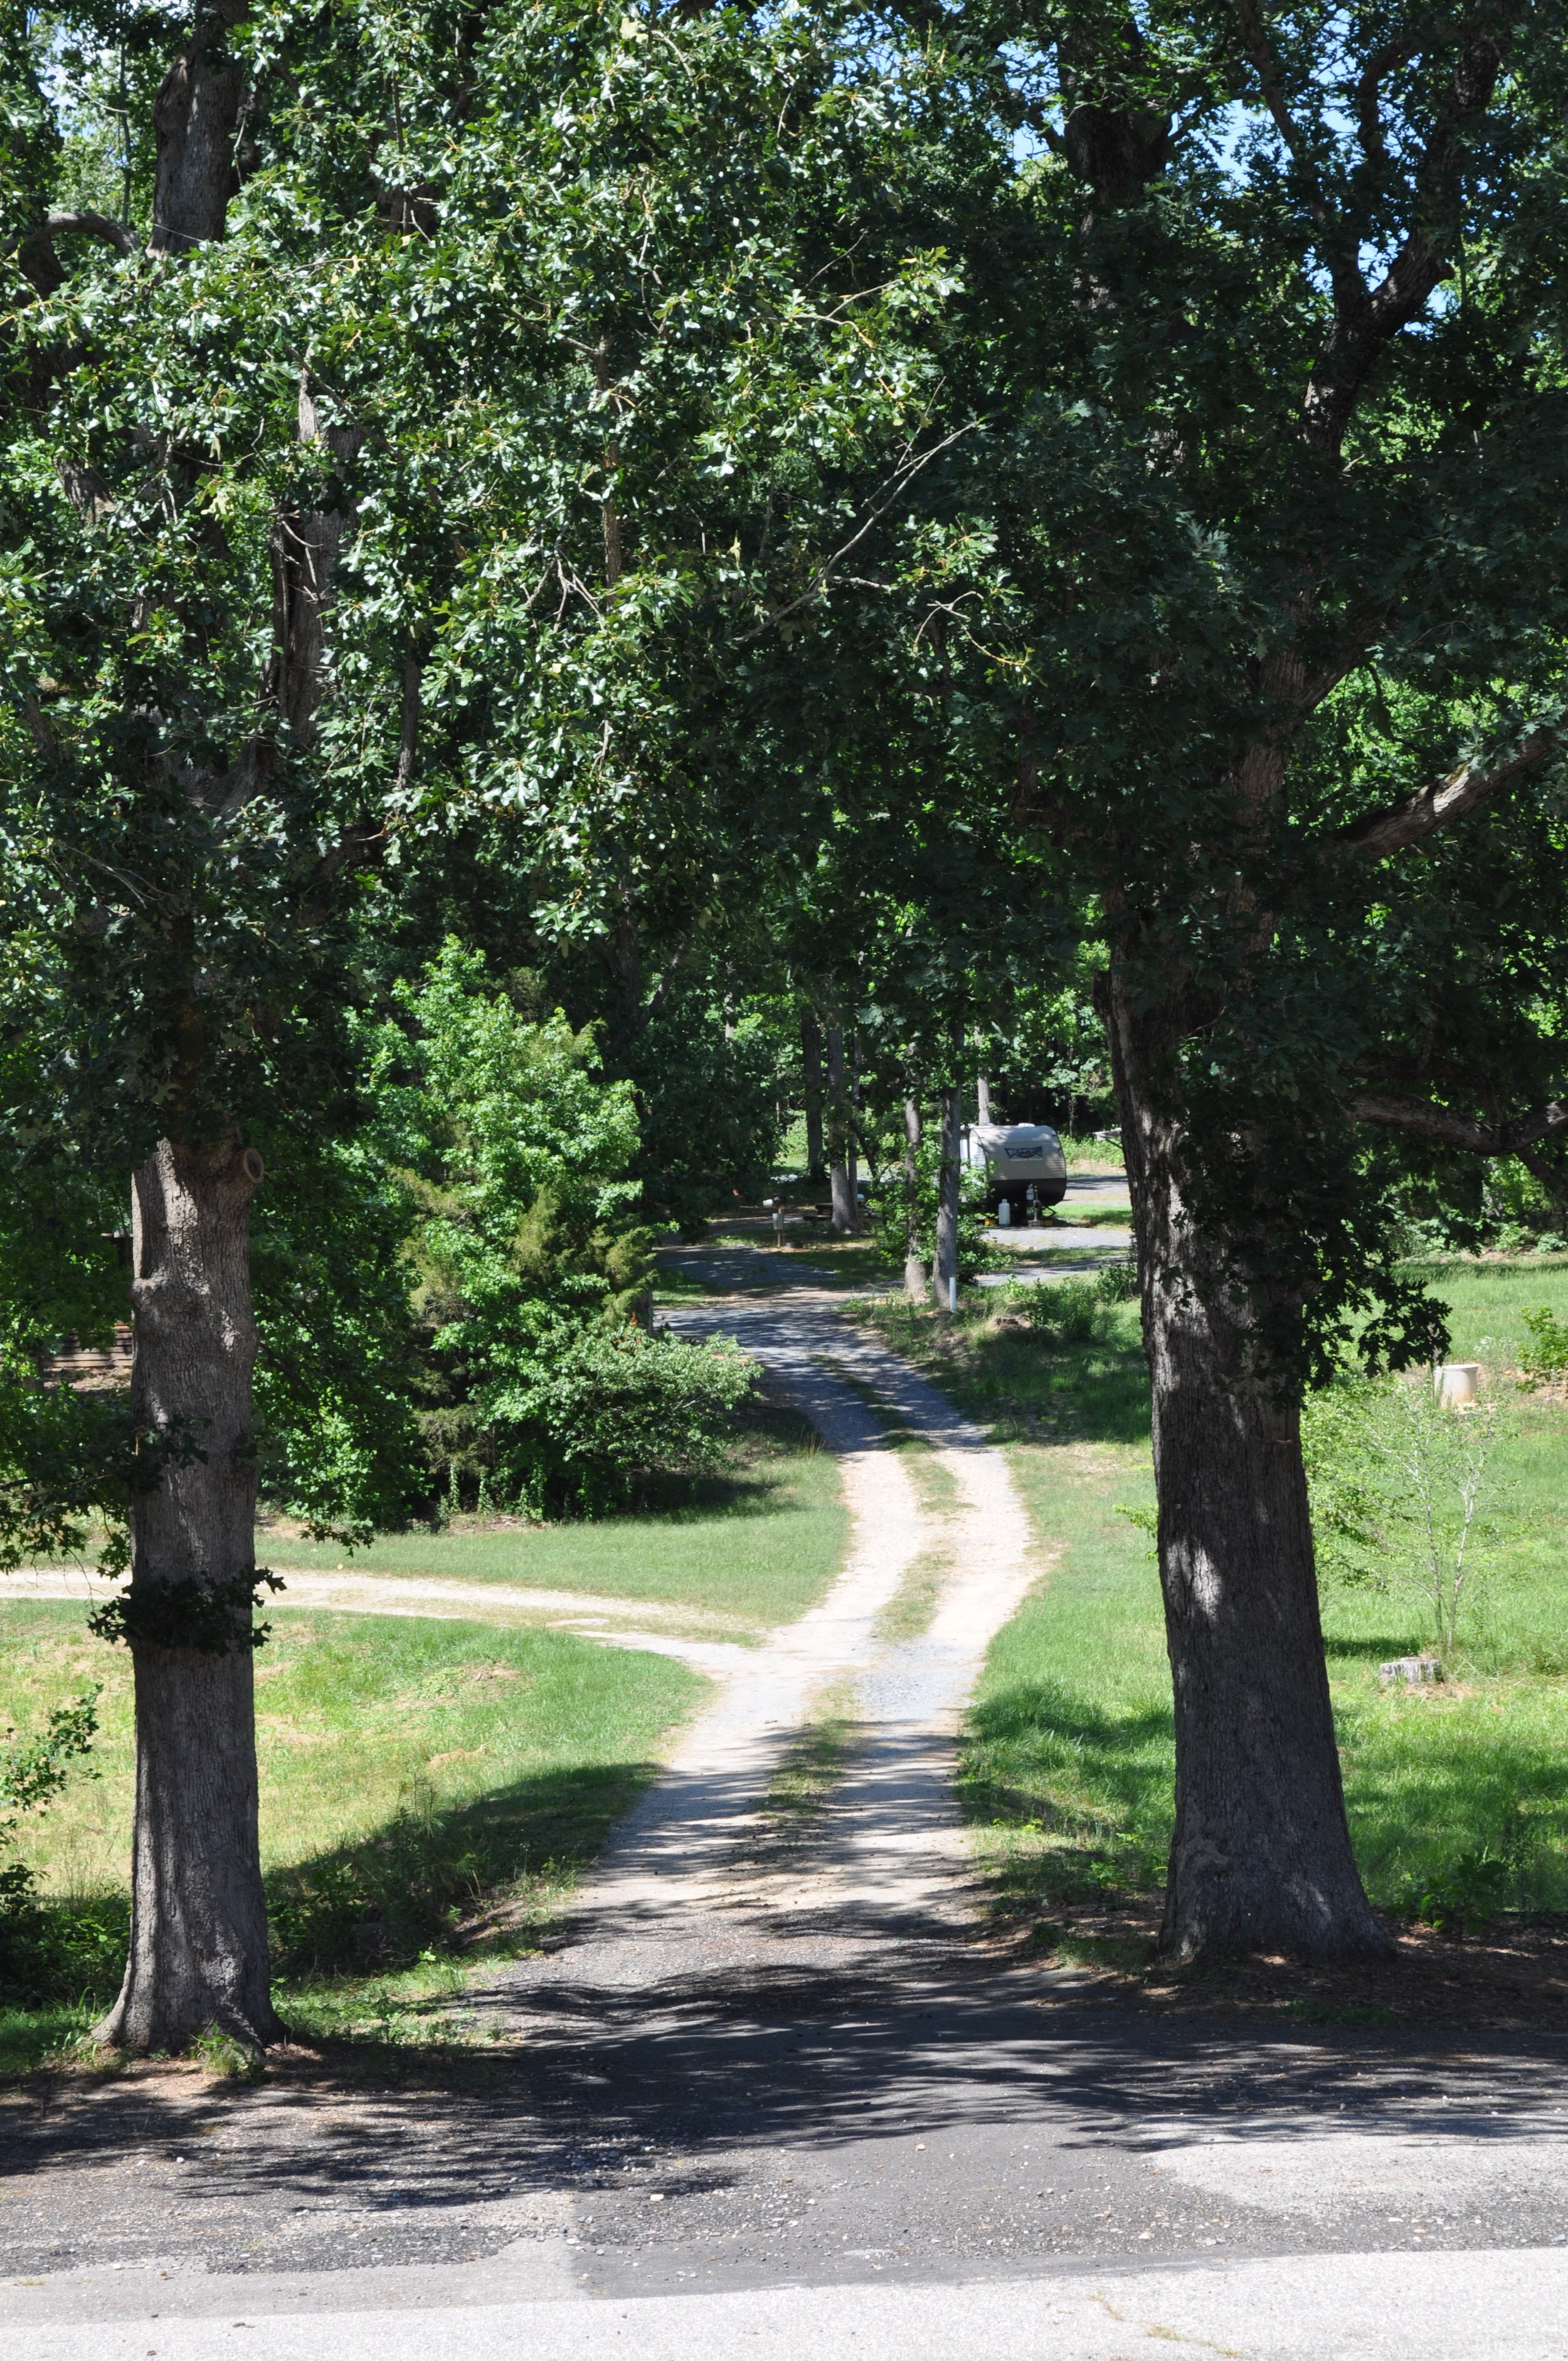 Welcome to Camp Henning - Camp Henning at Ellerbe Springs currently has 7 RV sites - all full hook ups. 5 sites are pull-thrus with 50 amp electric. 2 sites are back-ins in 30 amp electric. We can accommodate large rigsWe plan to continue expansion of the campground - up to 100 spaces and amenities.We are conveniently located off exit 28 of NC Highway 73/74. It is 2 miles from the exit to our driveway.Come stay and enjoy the 42 rolling acres, the catch & release 5-acre pond, and the on-site restaurant.We hope you schedule a visit to the historic Ellerbe Springs soon!